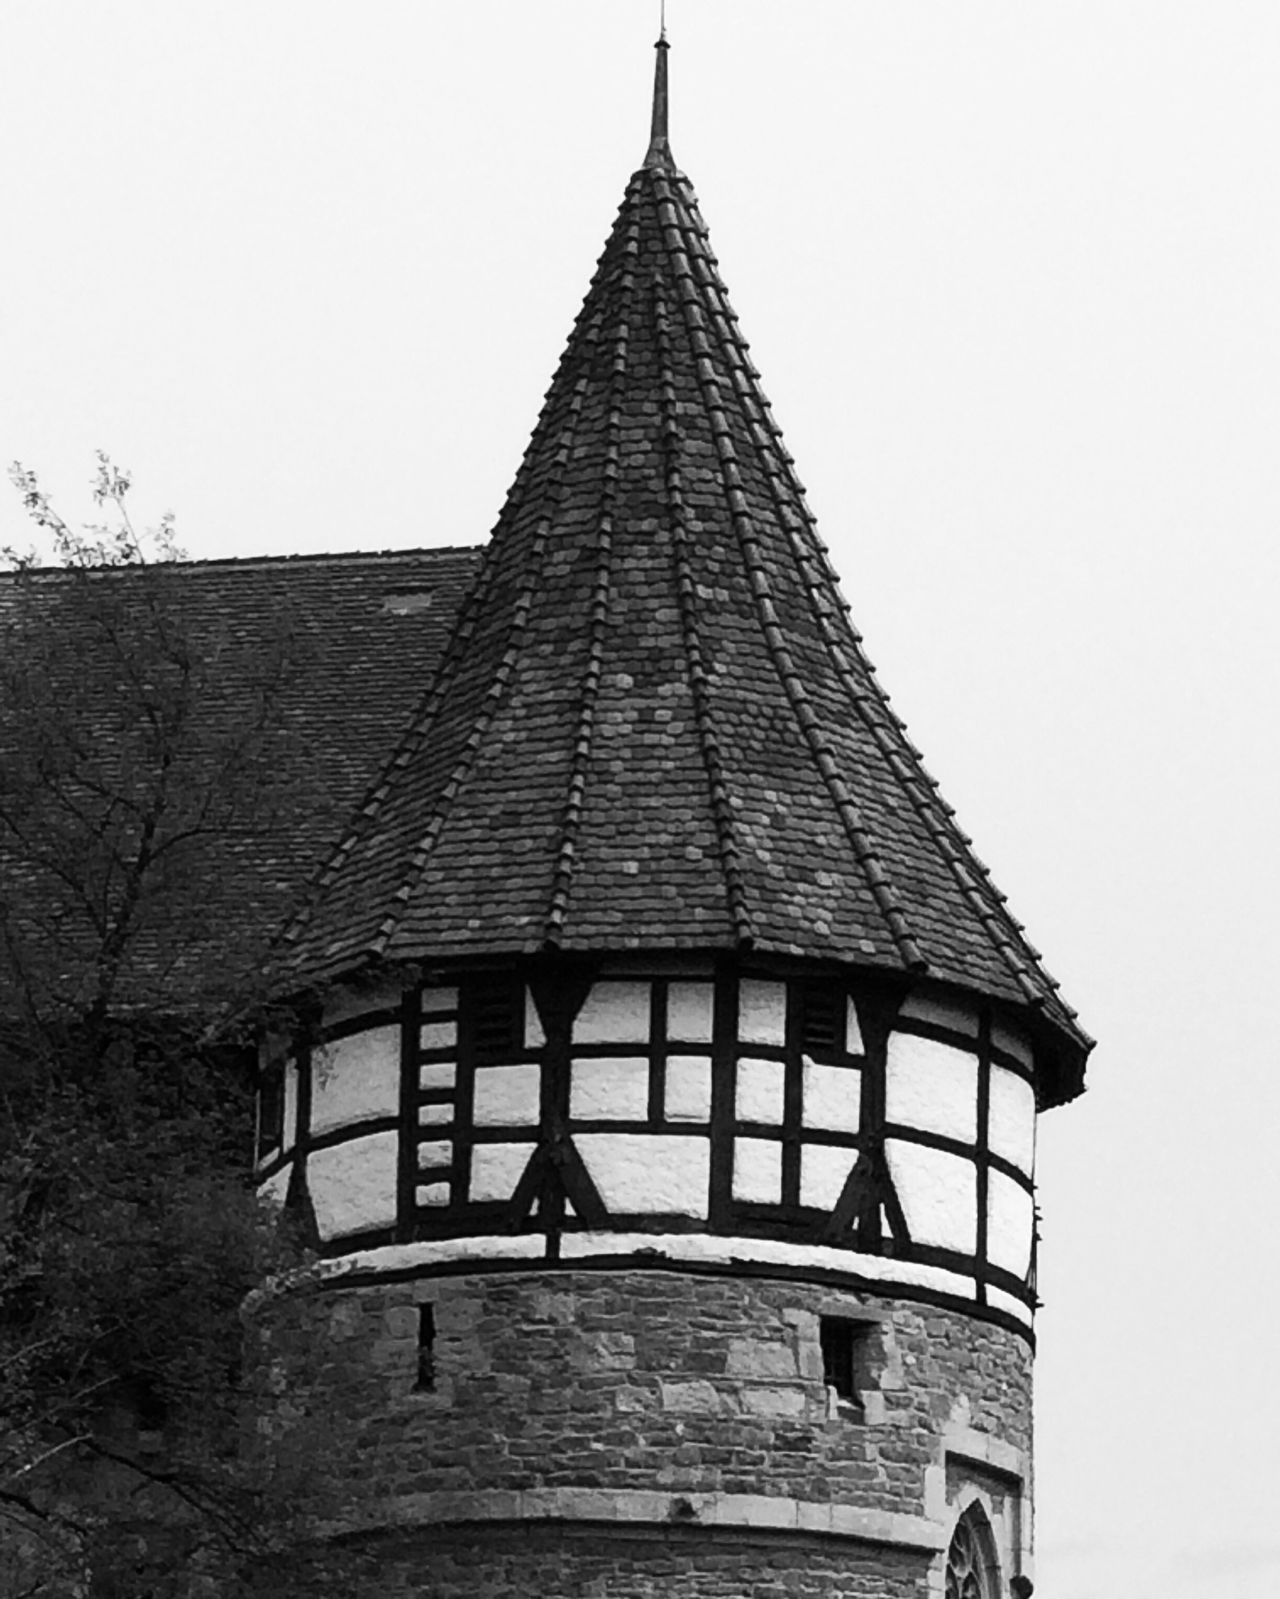 Zollernschloss Castle Balingen Architecture Architecture_collection Blackandwhite Blackandwhite Photography